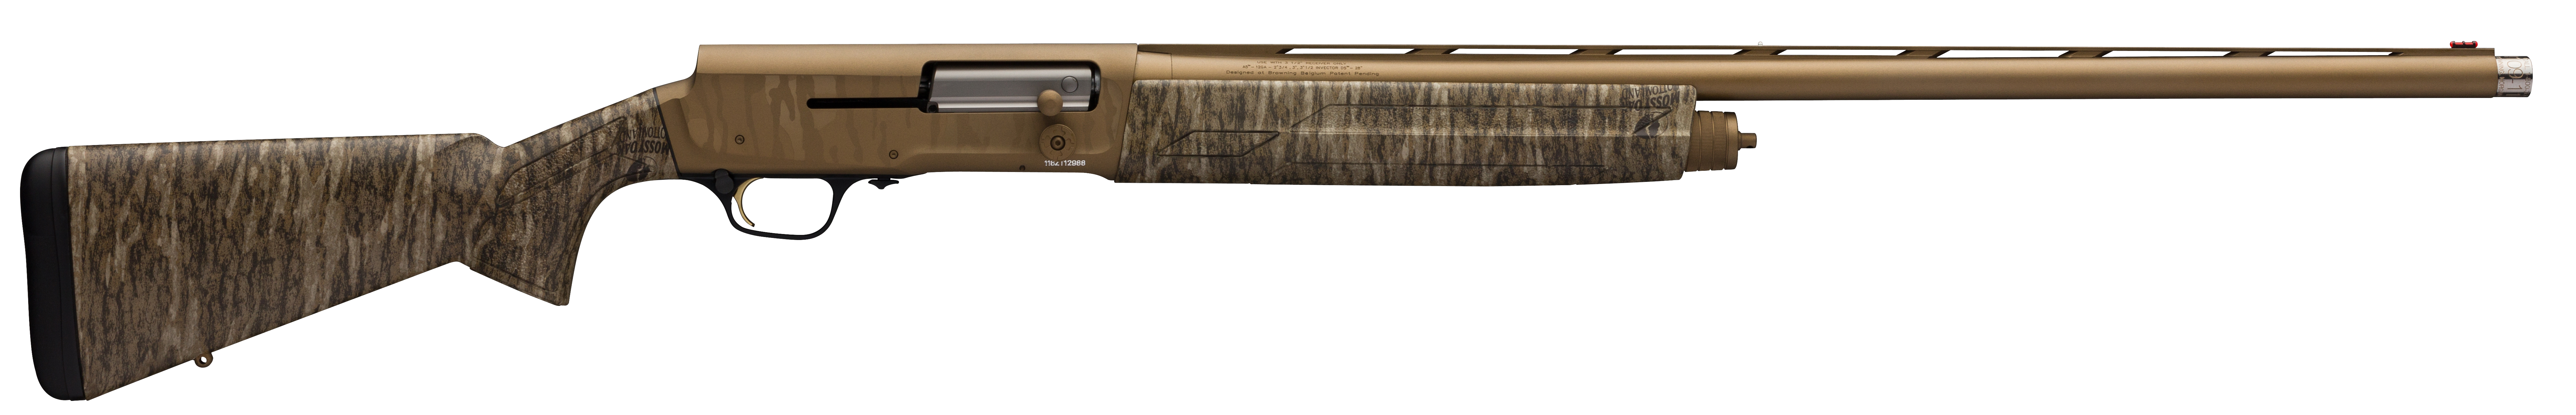 Browning A5 Wicked Wing Semi-Auto Shotgun 3.5'' 12 Gauge 28'' Burnt Bronze Cerakote - Synthetic - Mossy Oak Bottomland